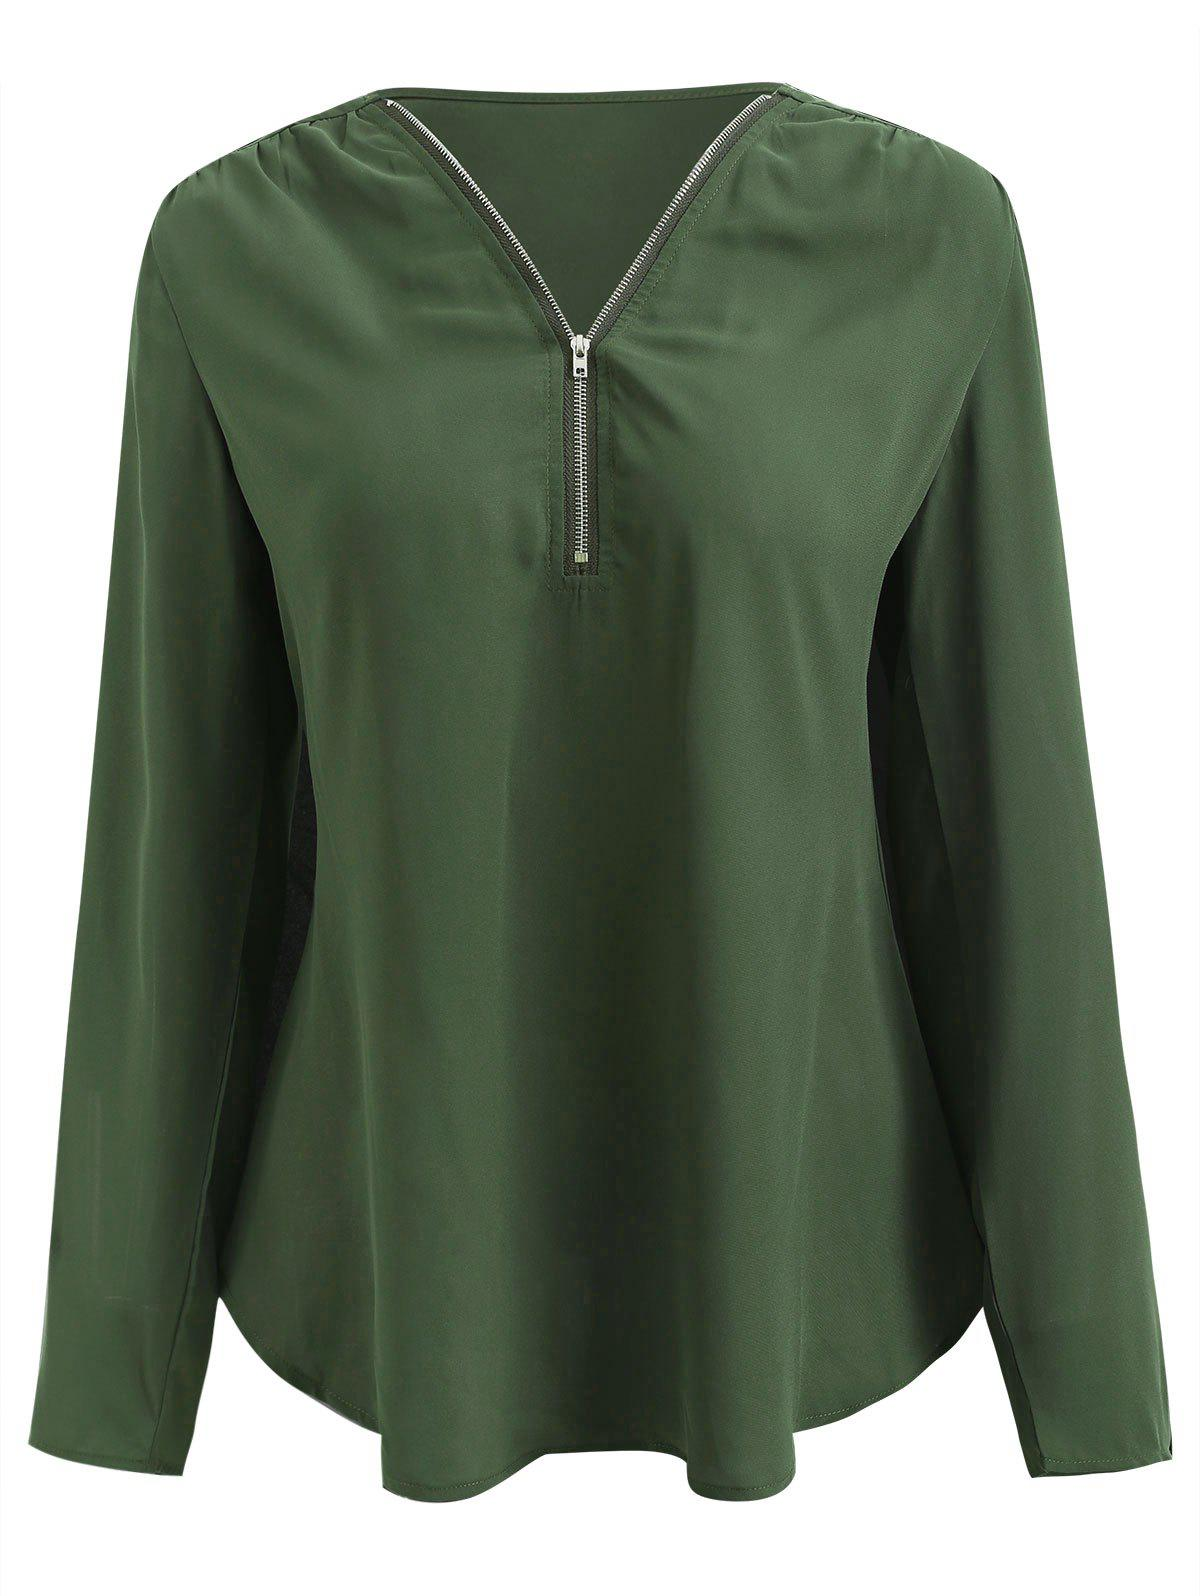 Half Zipper Long Sleeve Blouse - MEDIUM FOREST GREEN S